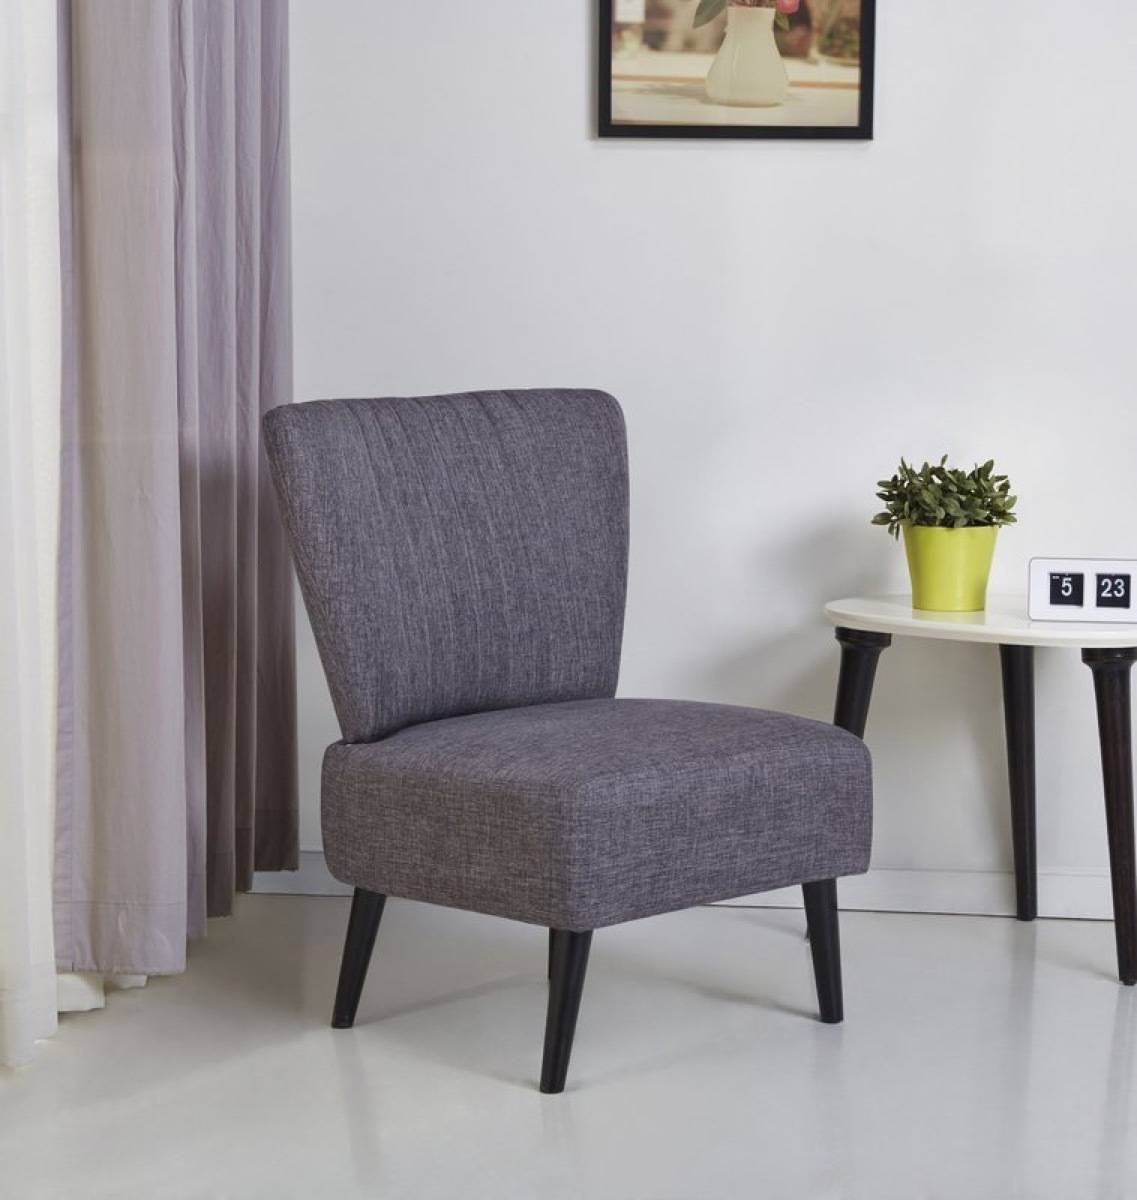 Trent side chair from Wayfair